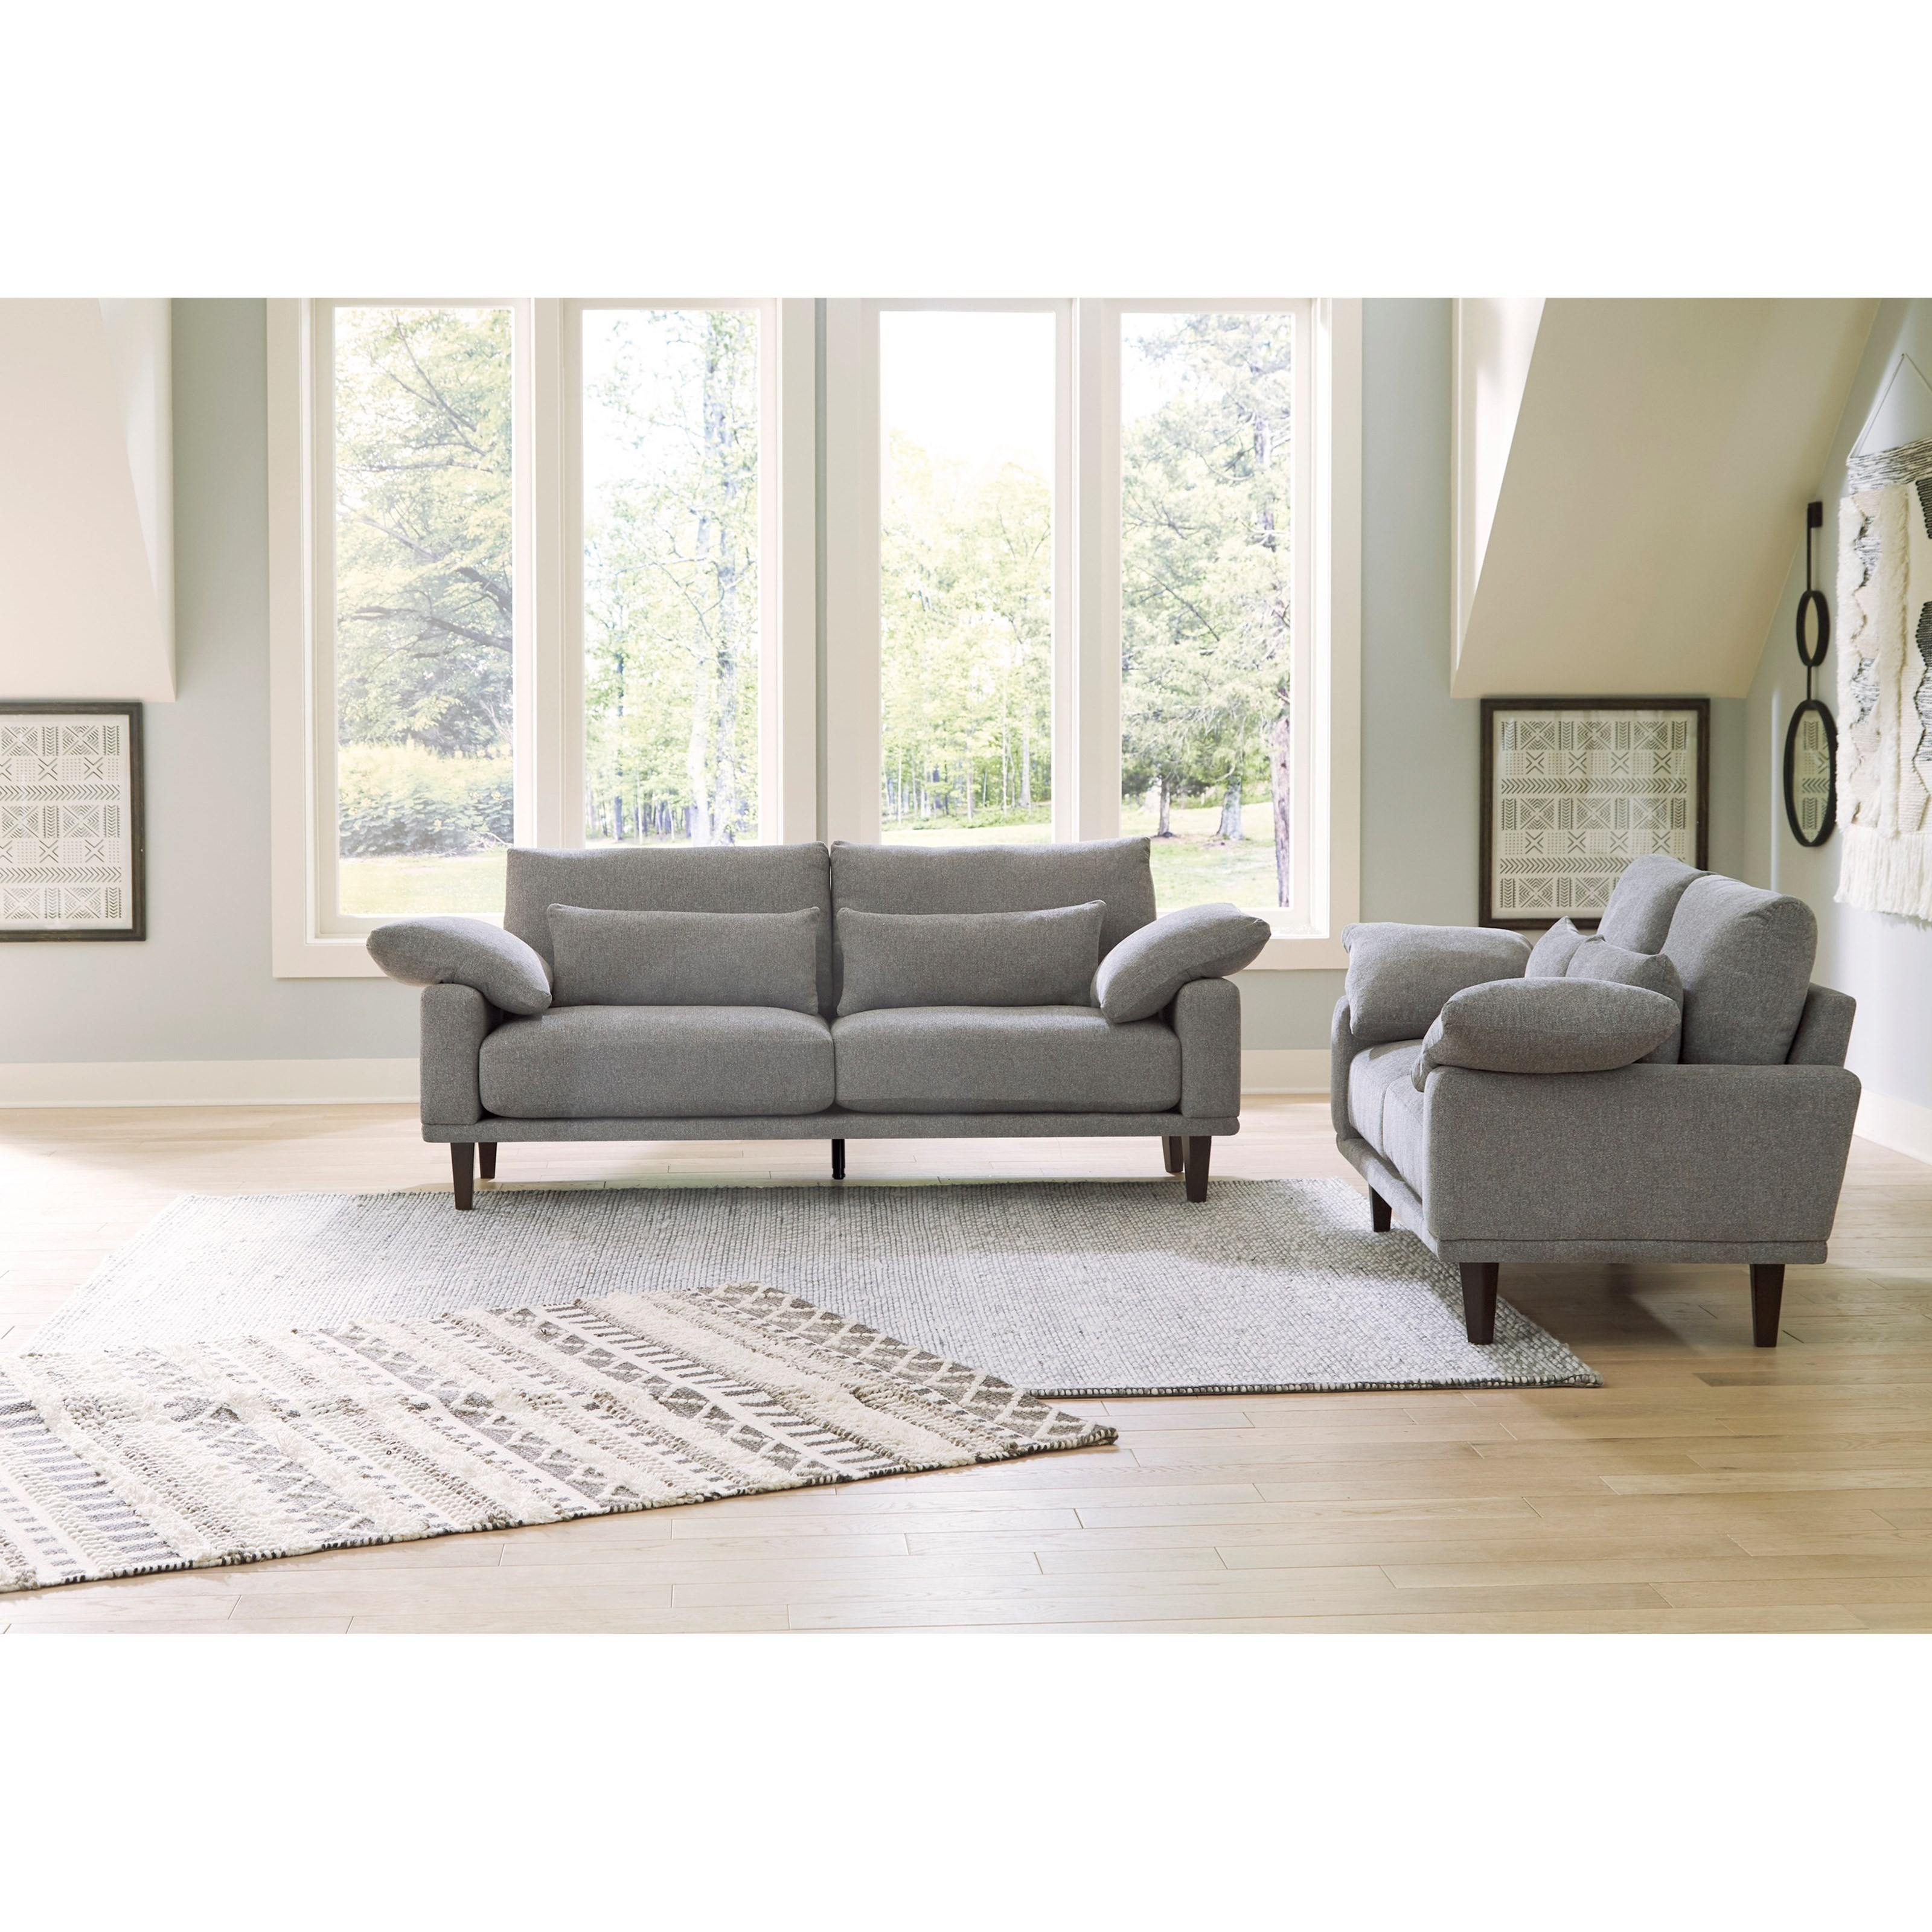 Baneway Stationary Living Room Group by Benchcraft at Virginia Furniture Market